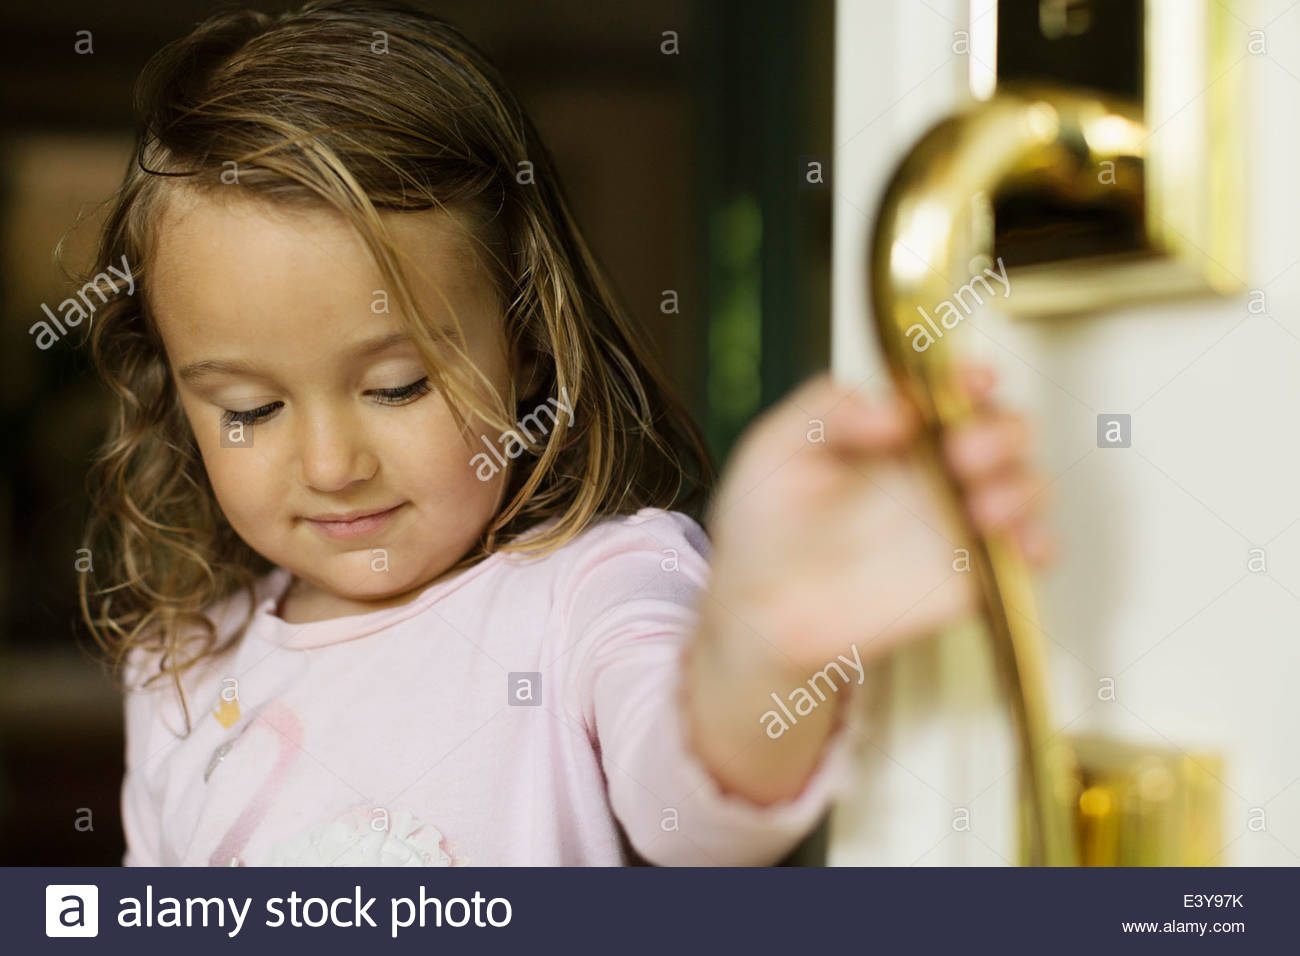 Female toddler opening door - Stock Image